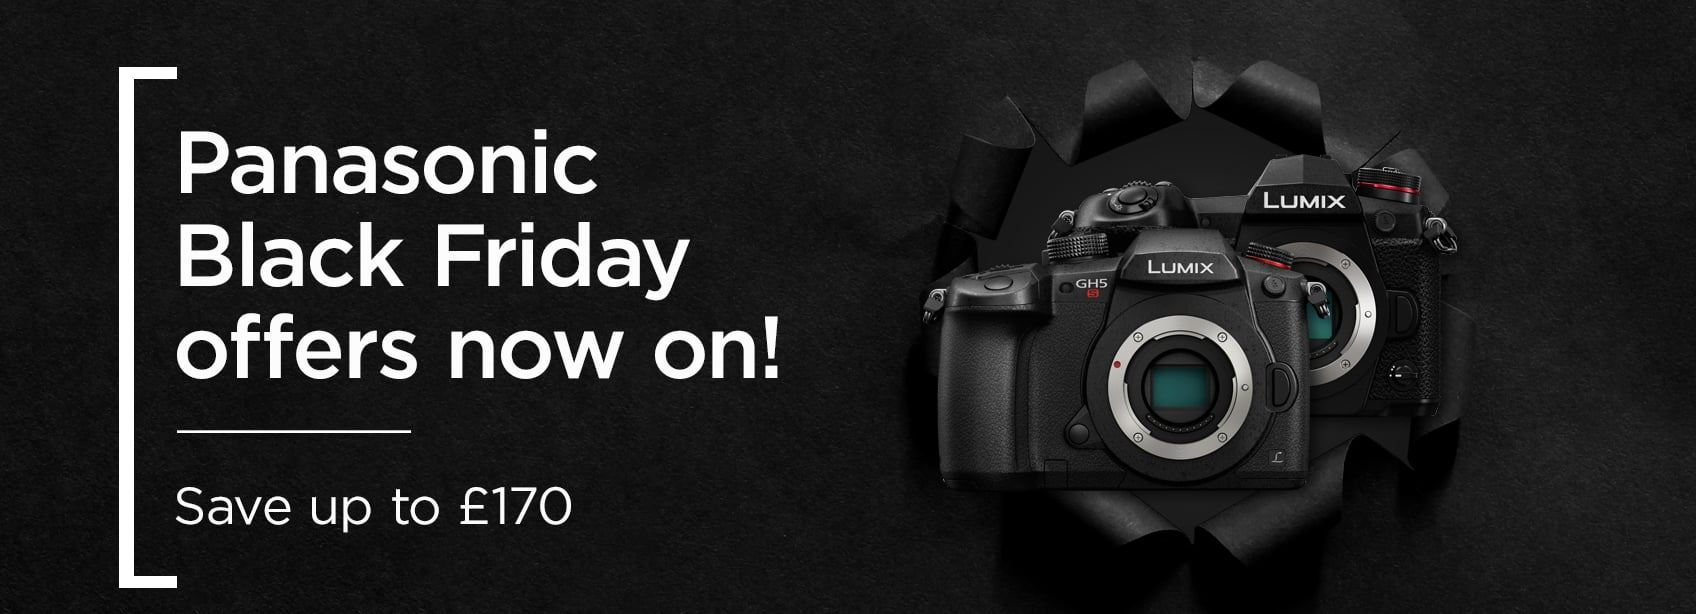 Panasonic Black Friday offers now on! Save up to £170